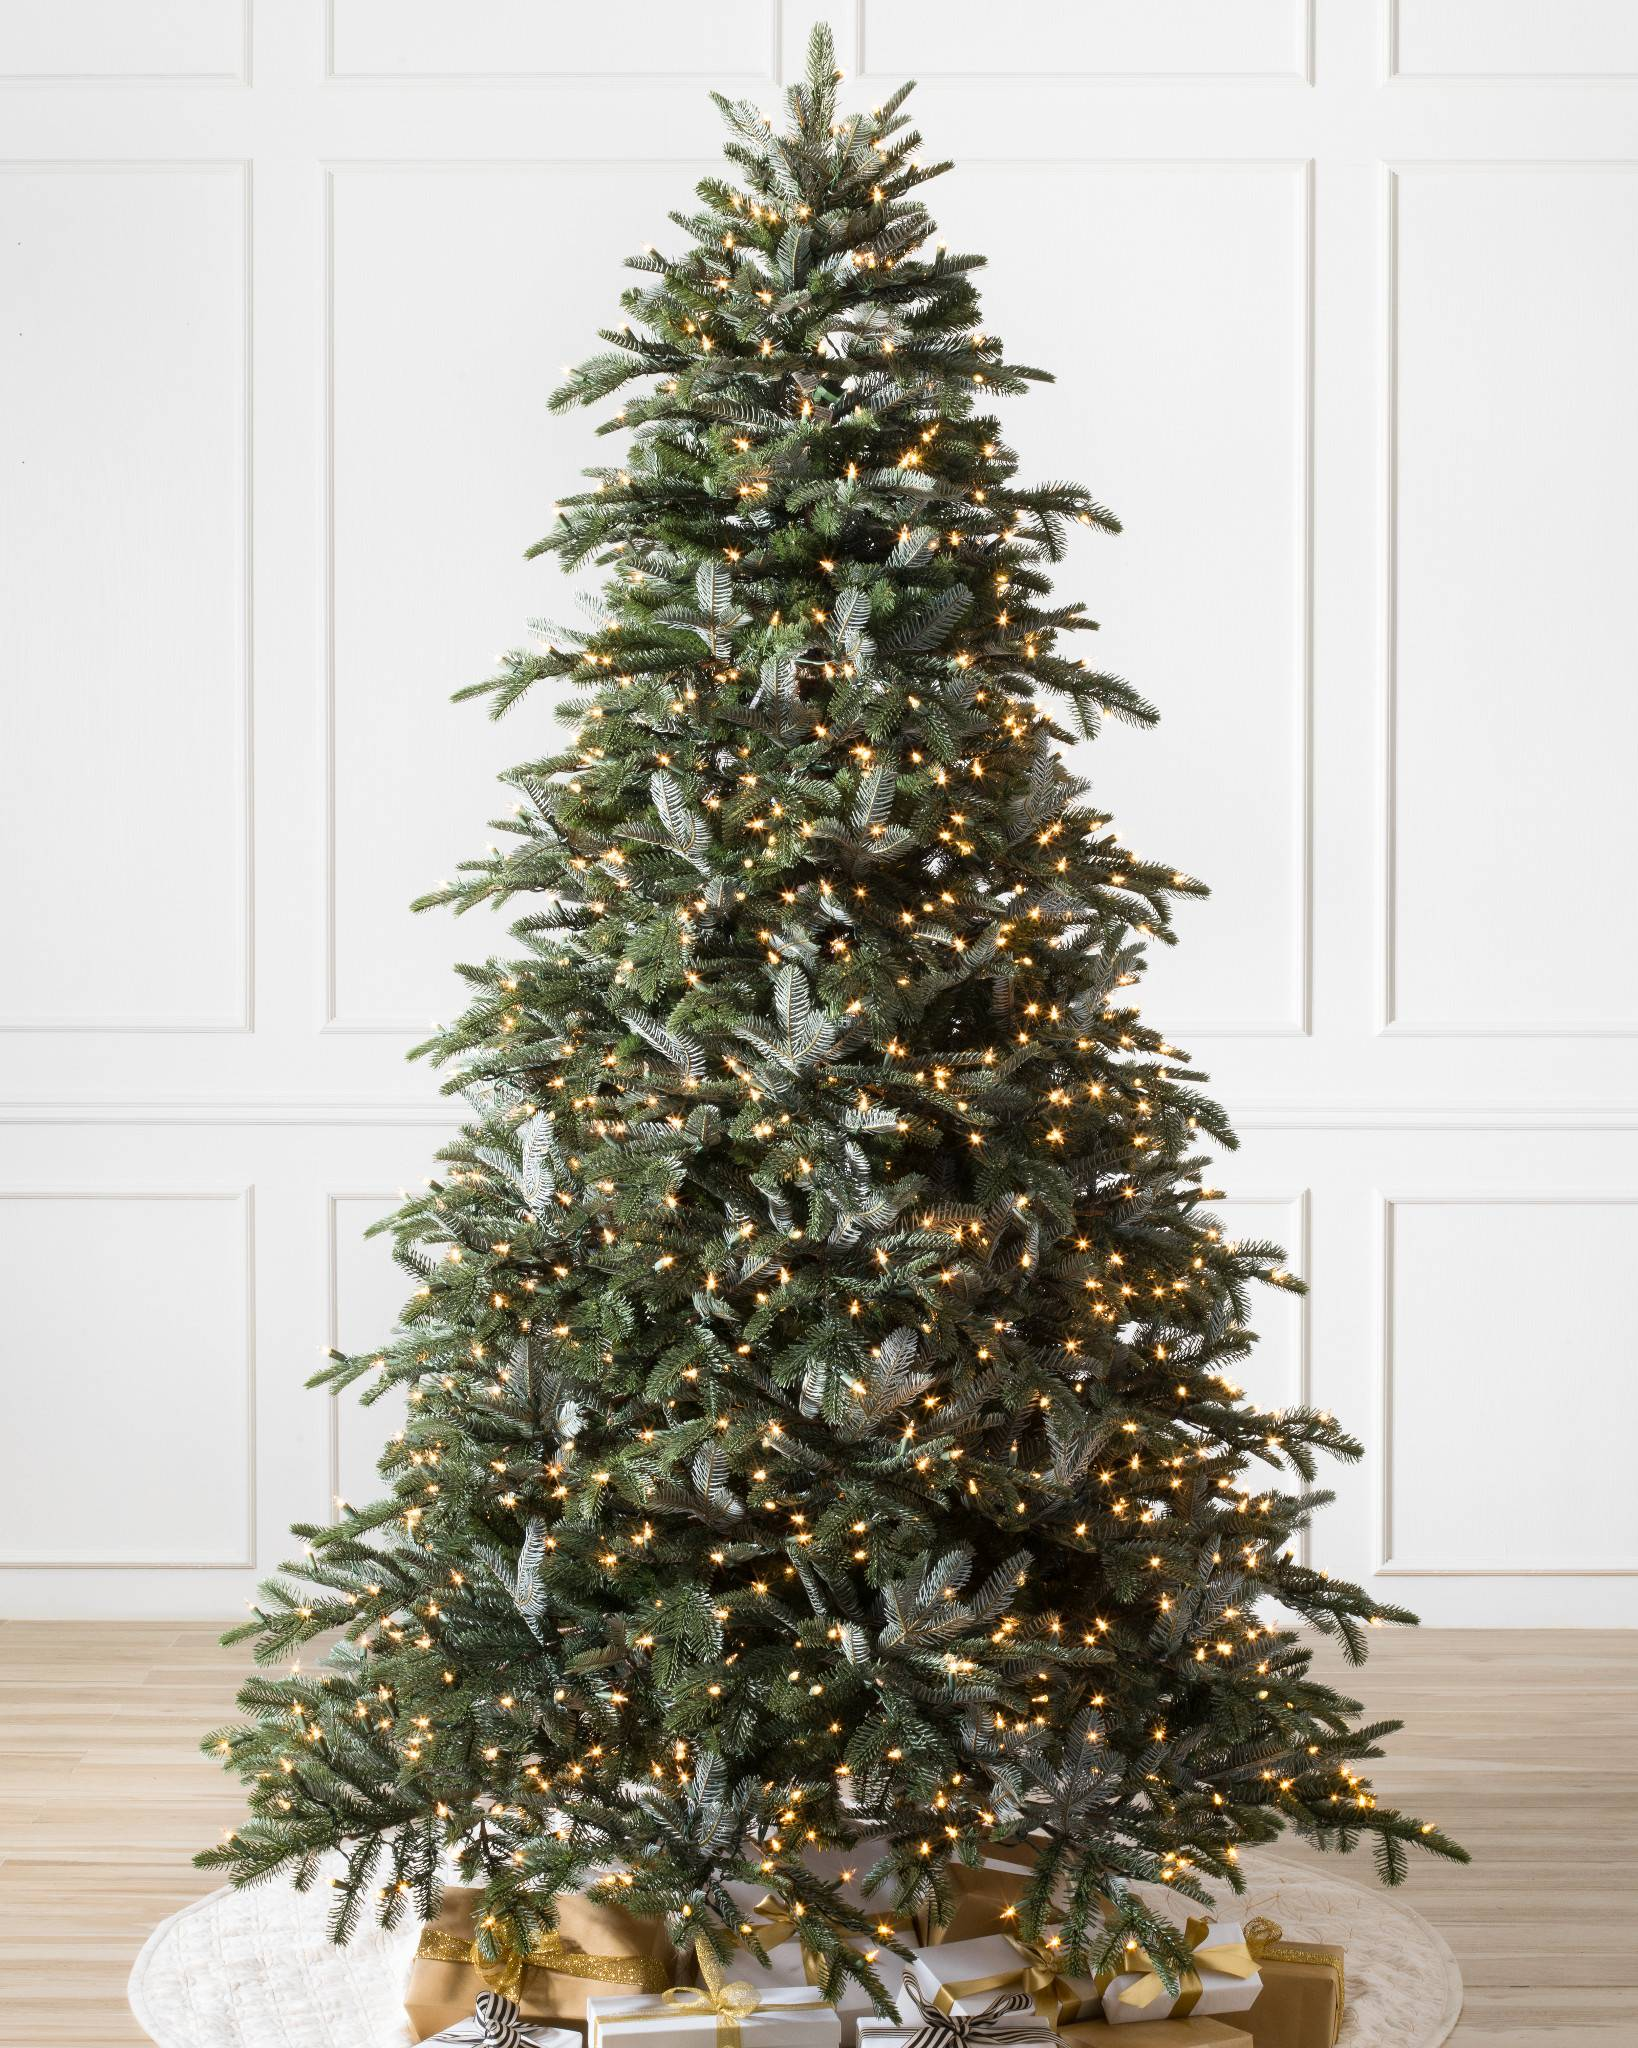 Artifical Christmas Trees.Bh Nordmann Fir Artificial Christmas Tree Balsam Hill